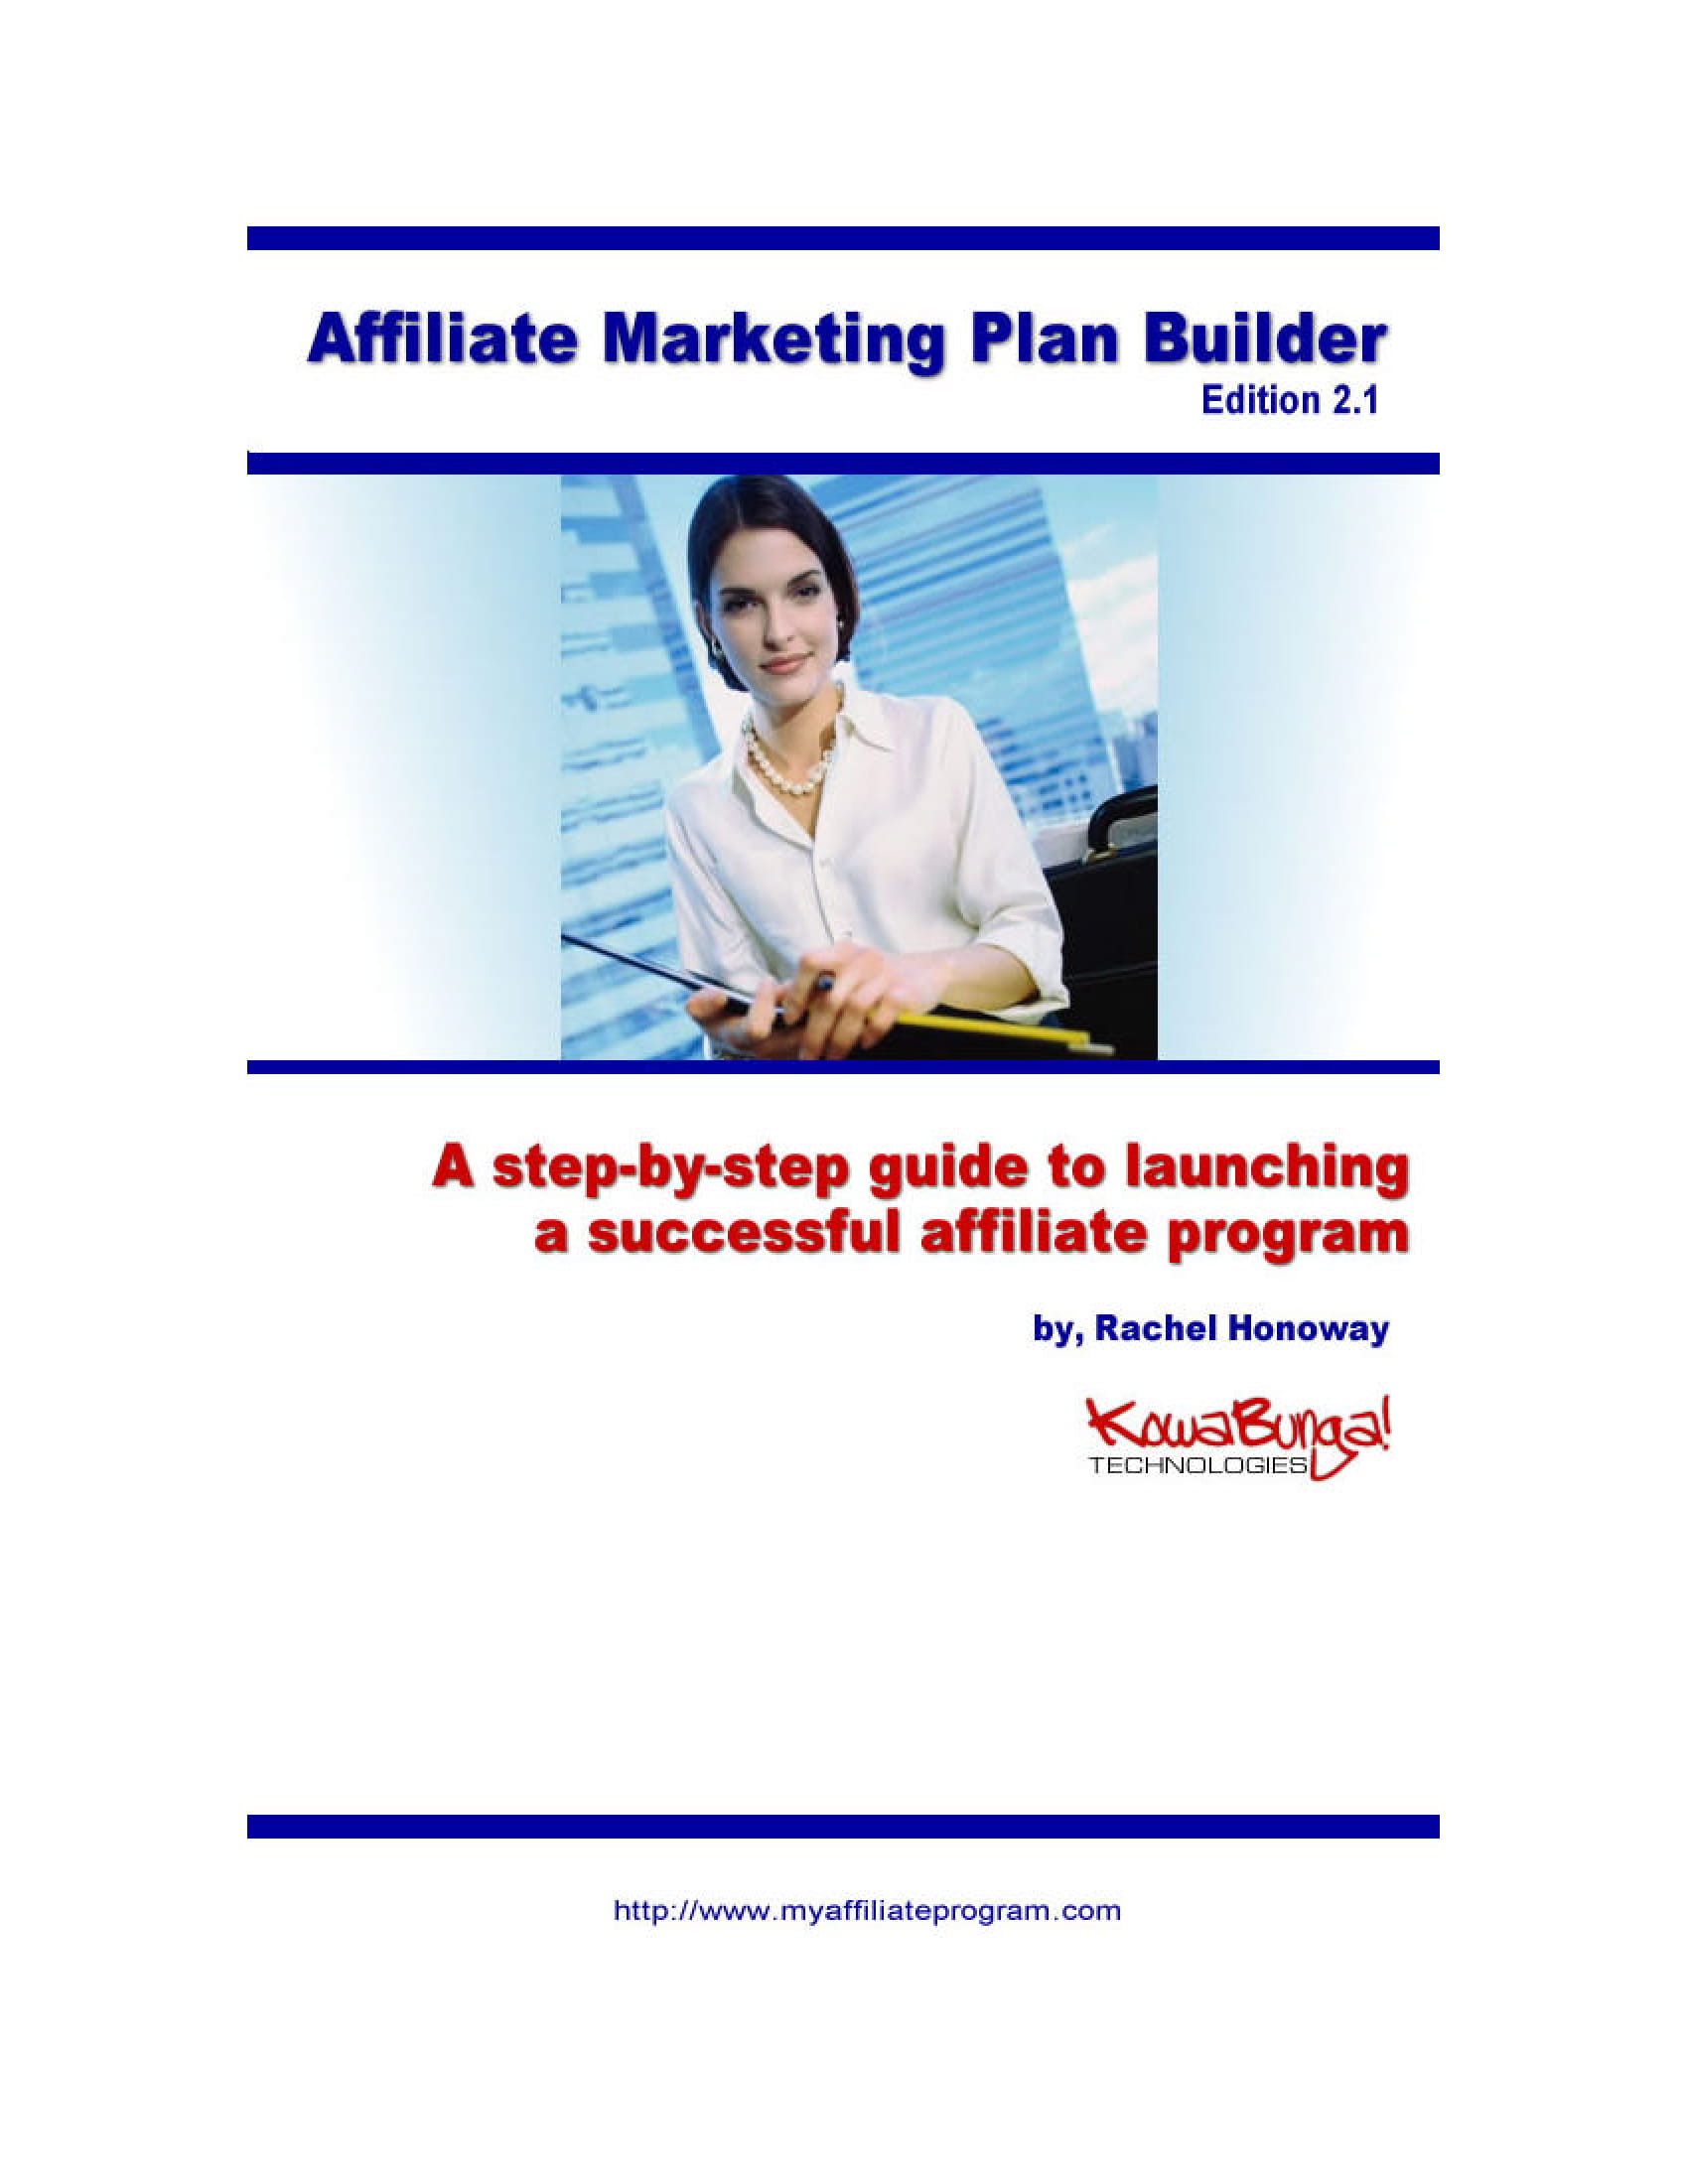 affiliate marketing plan builder for your business example 001